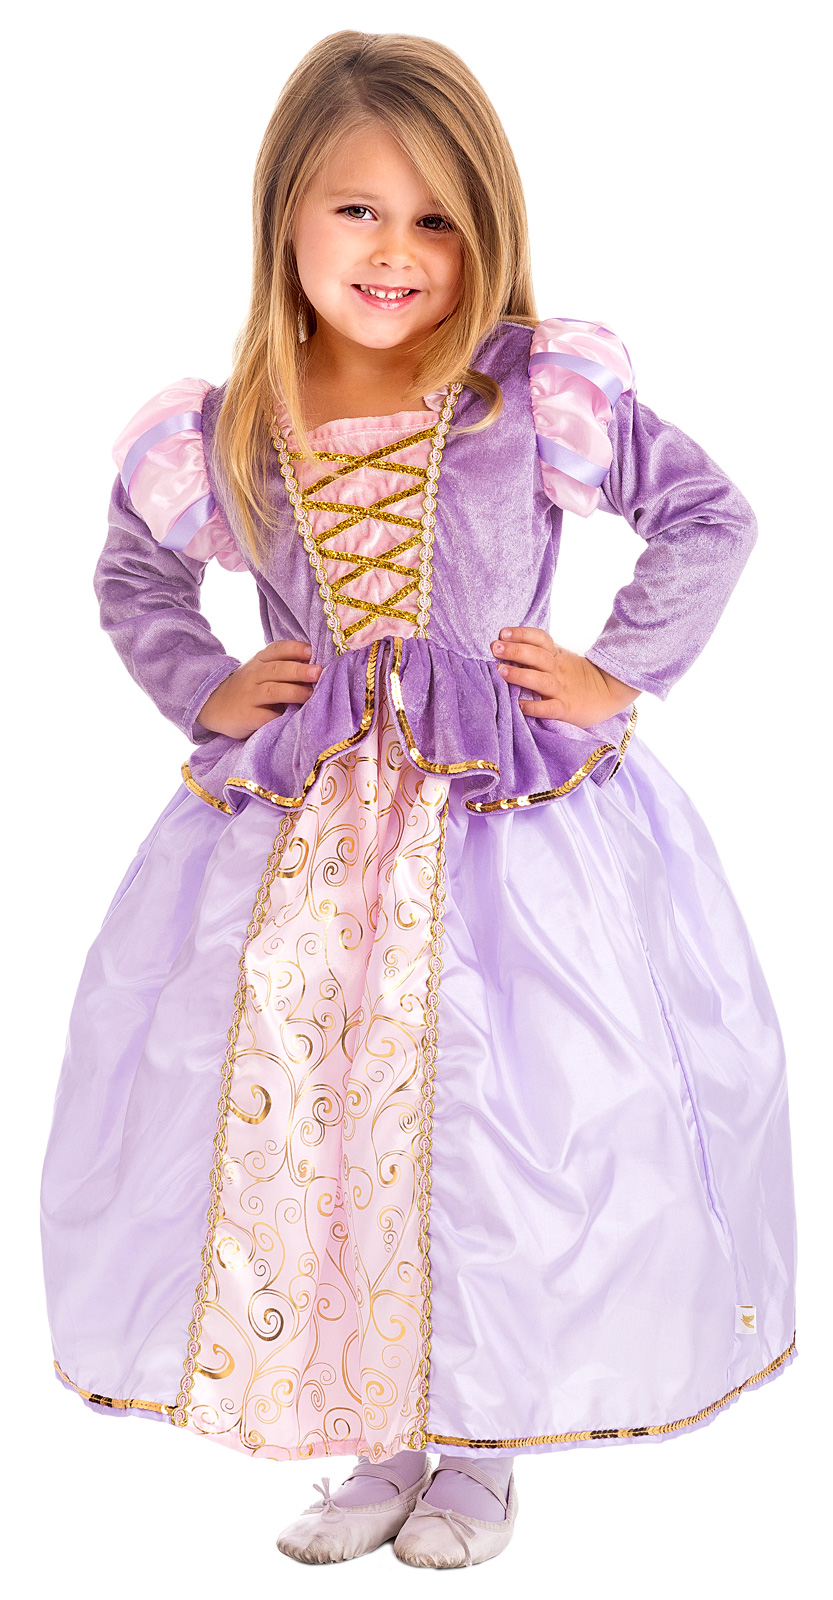 d2d69137e Rapunzel Tangled Inspired Princess Dress